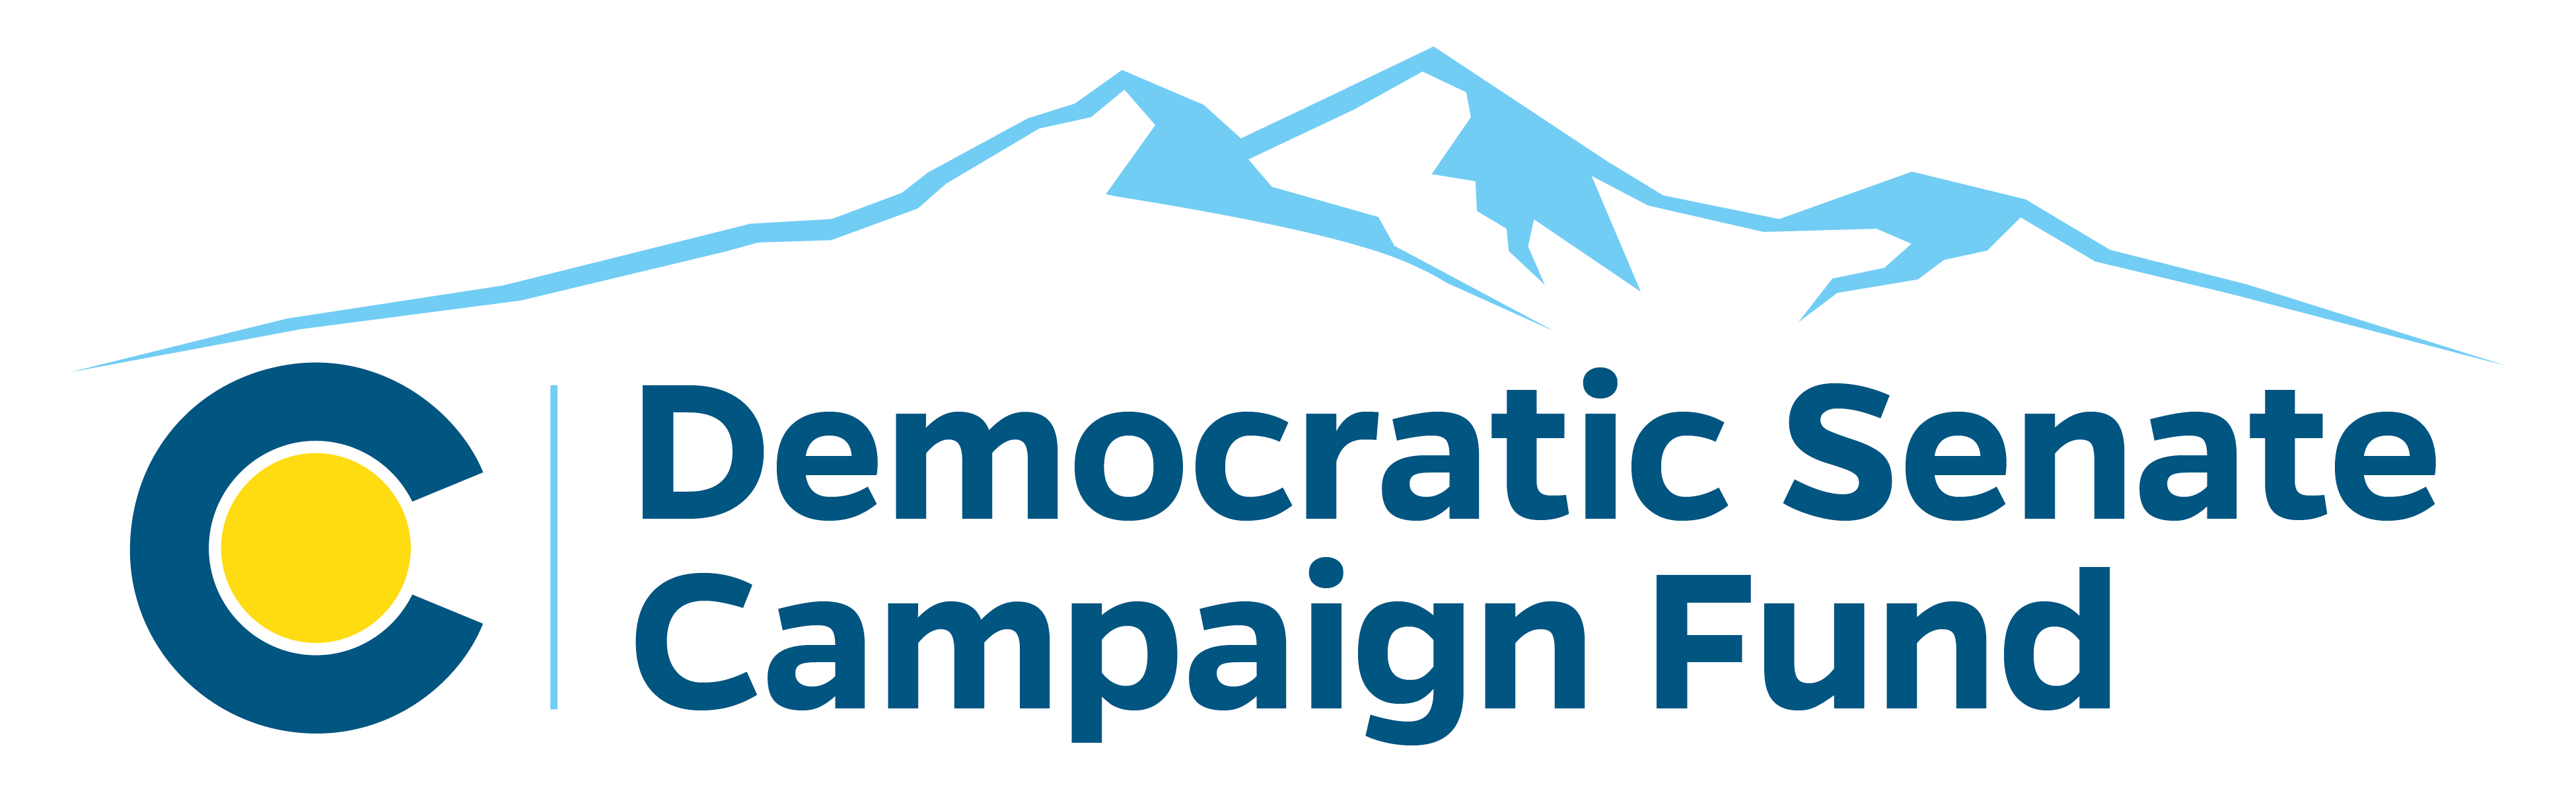 Democratic Senate Campaign Fund (CO)